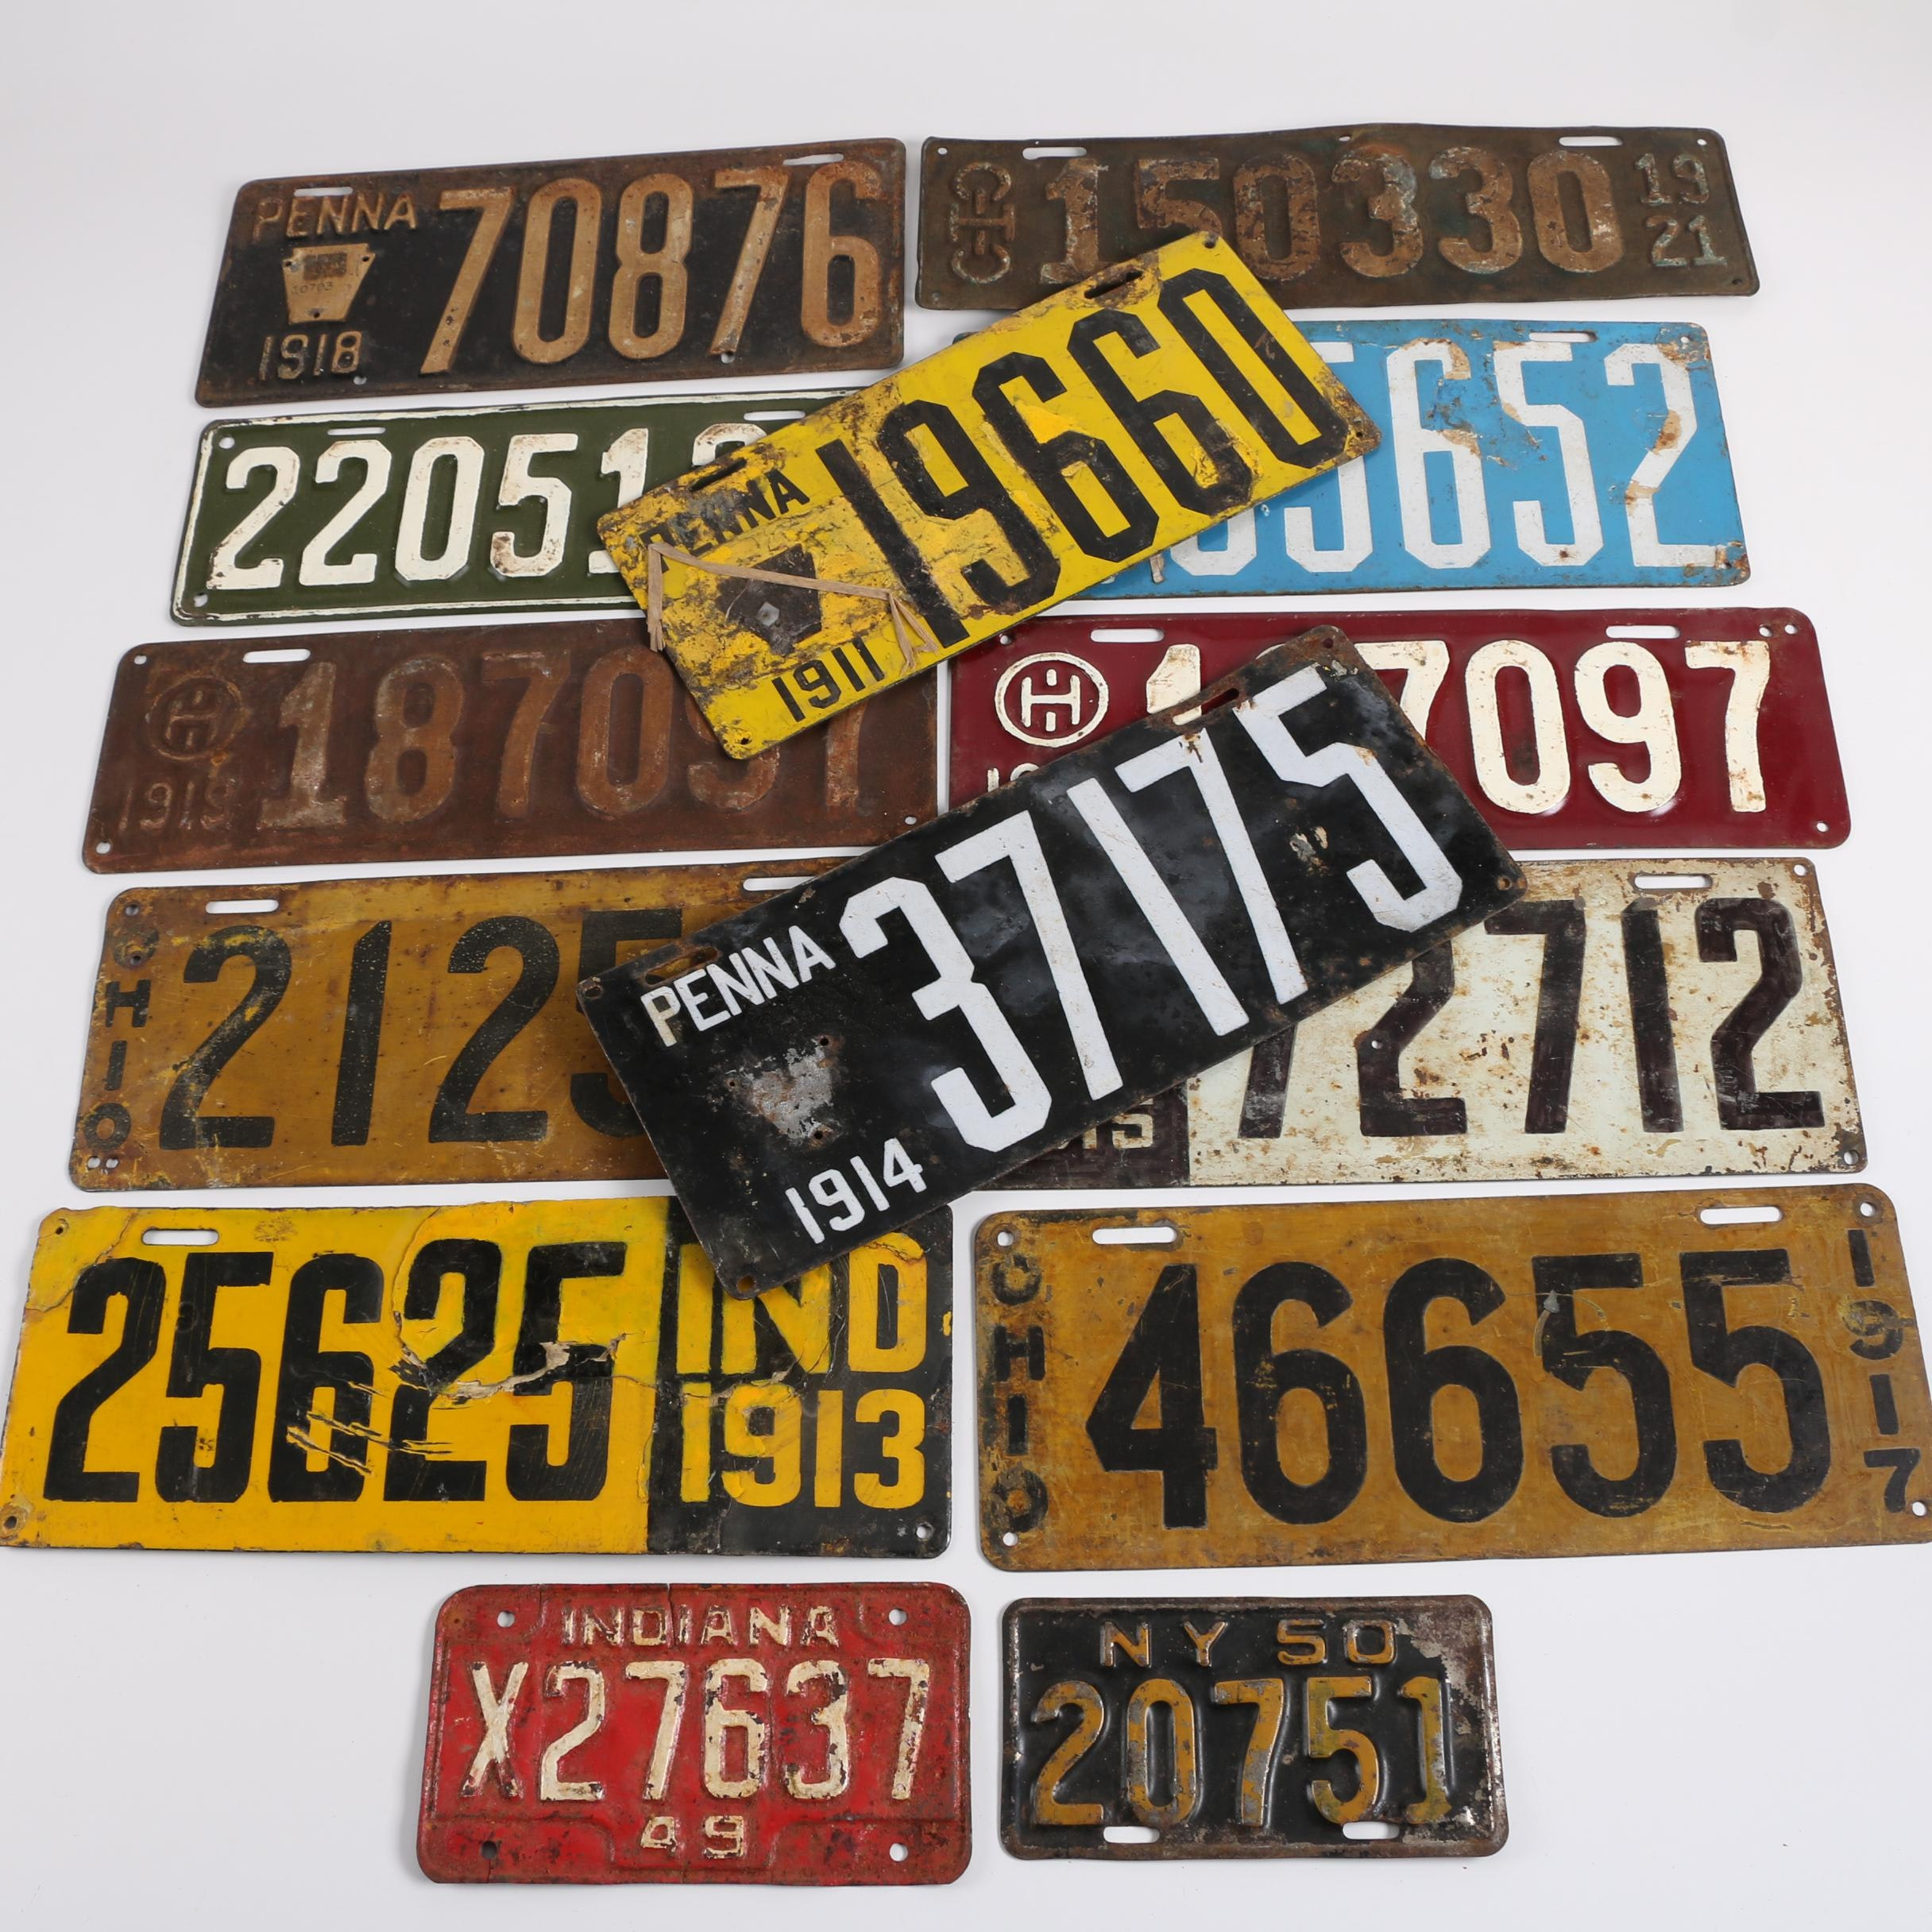 Early 20th Century License Plates from Ohio, Pennsylvania, and More